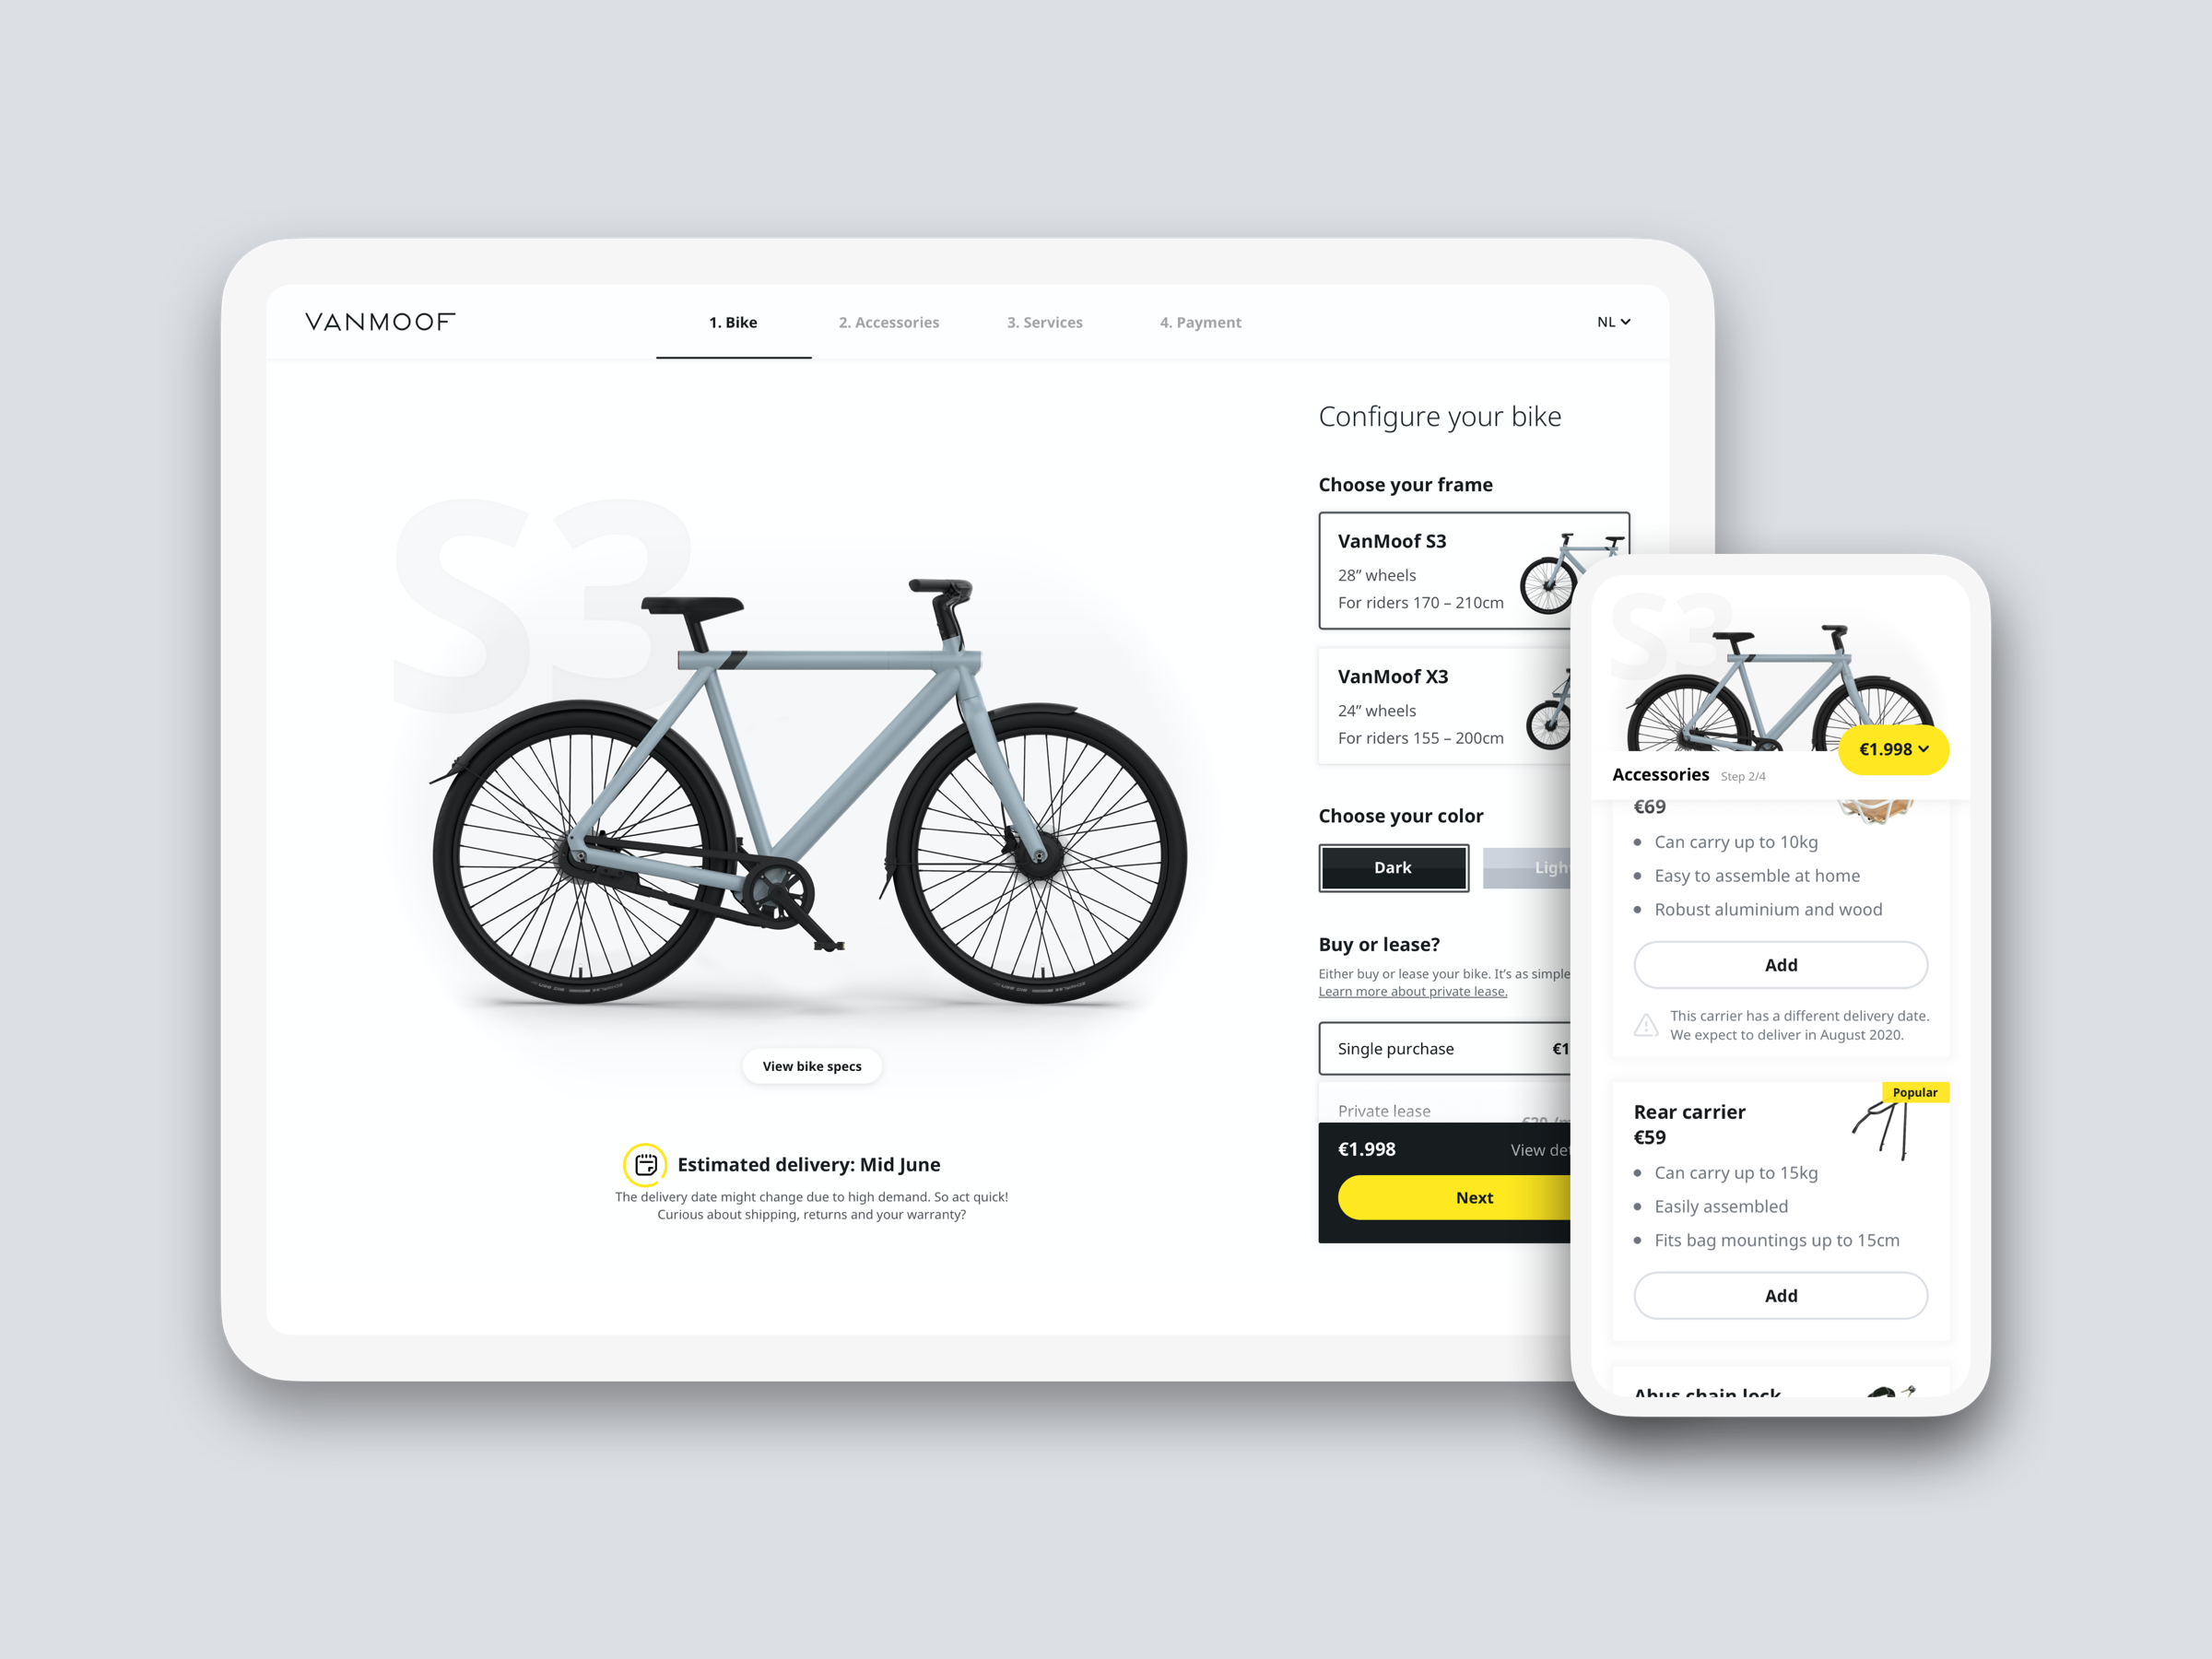 design_vanmoof